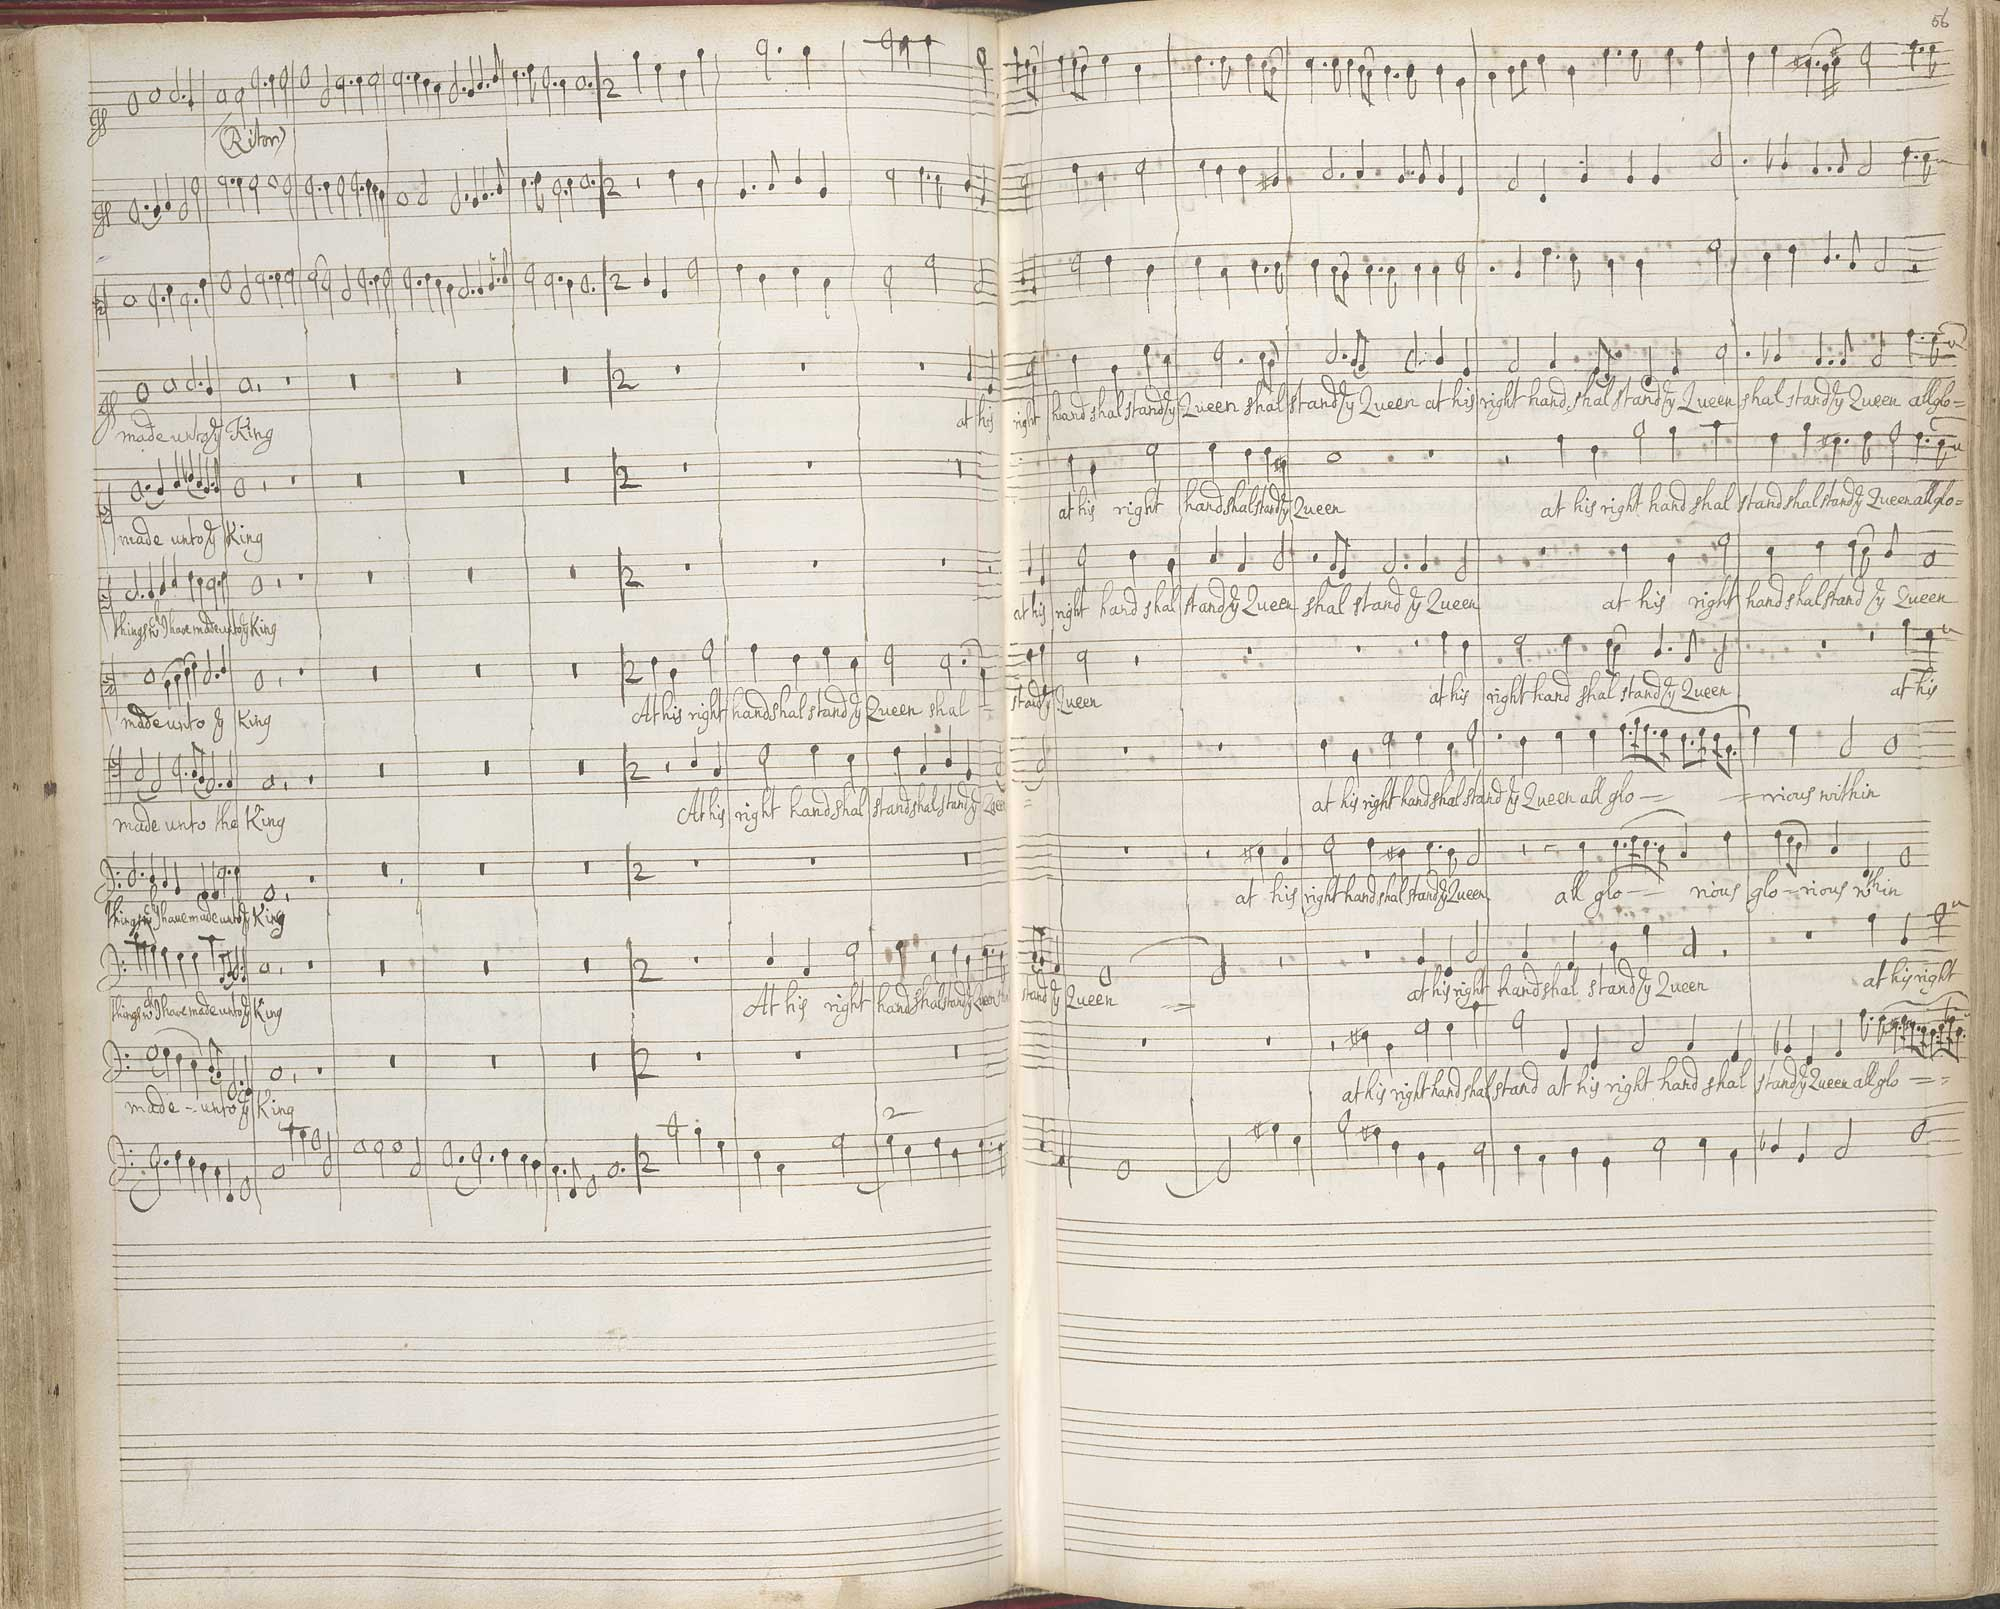 Henry Purcell's Autograph Score, f.55v-56